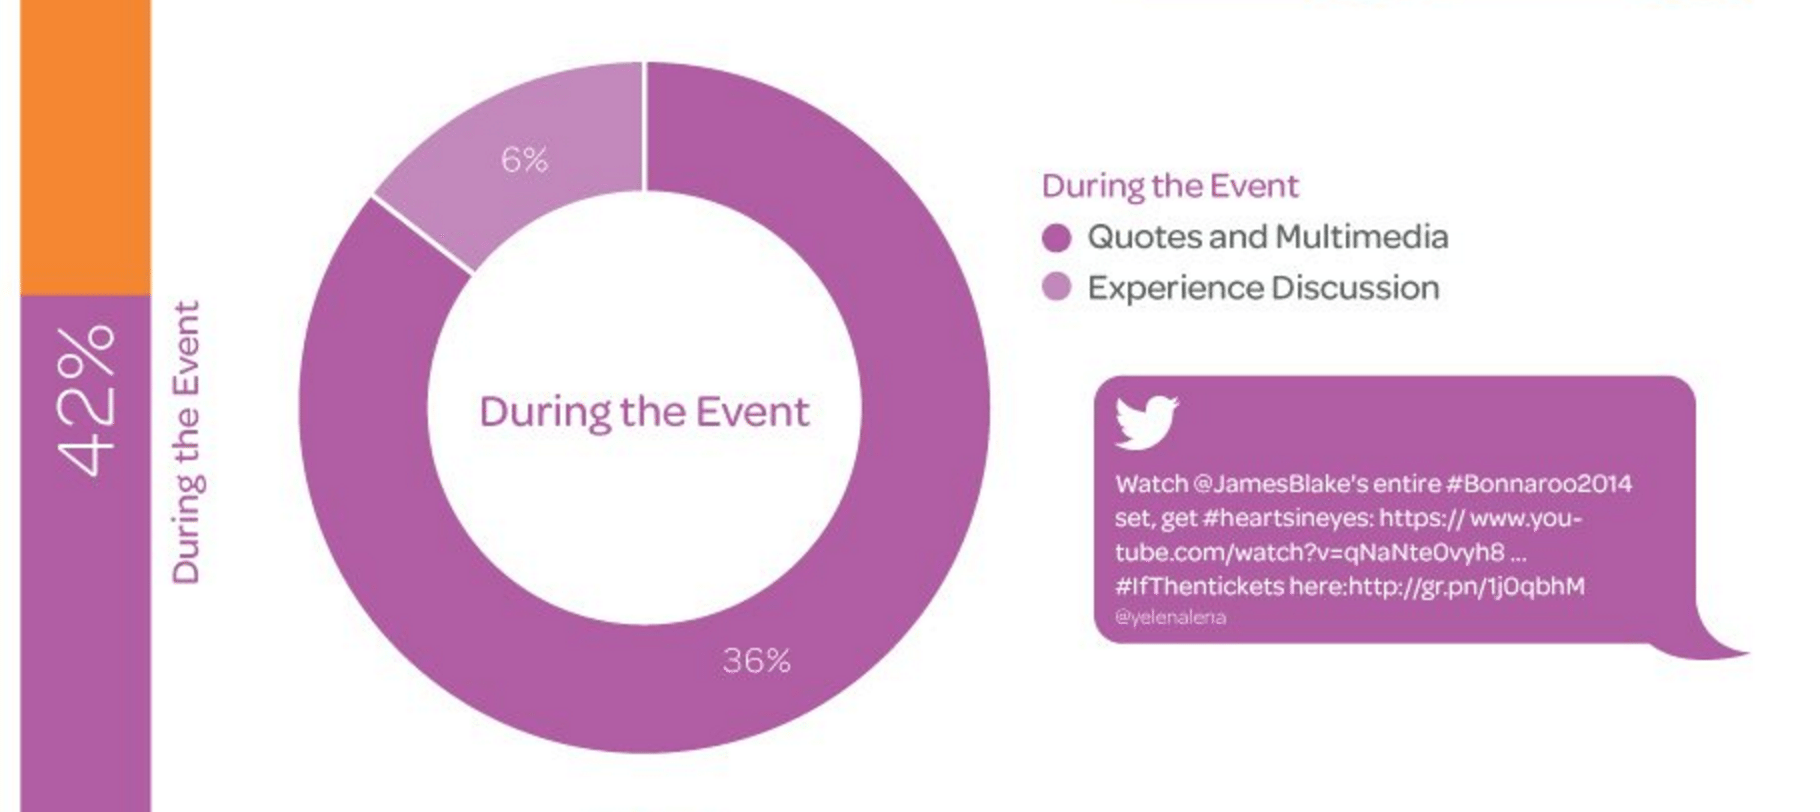 Social media event marketing - during the event